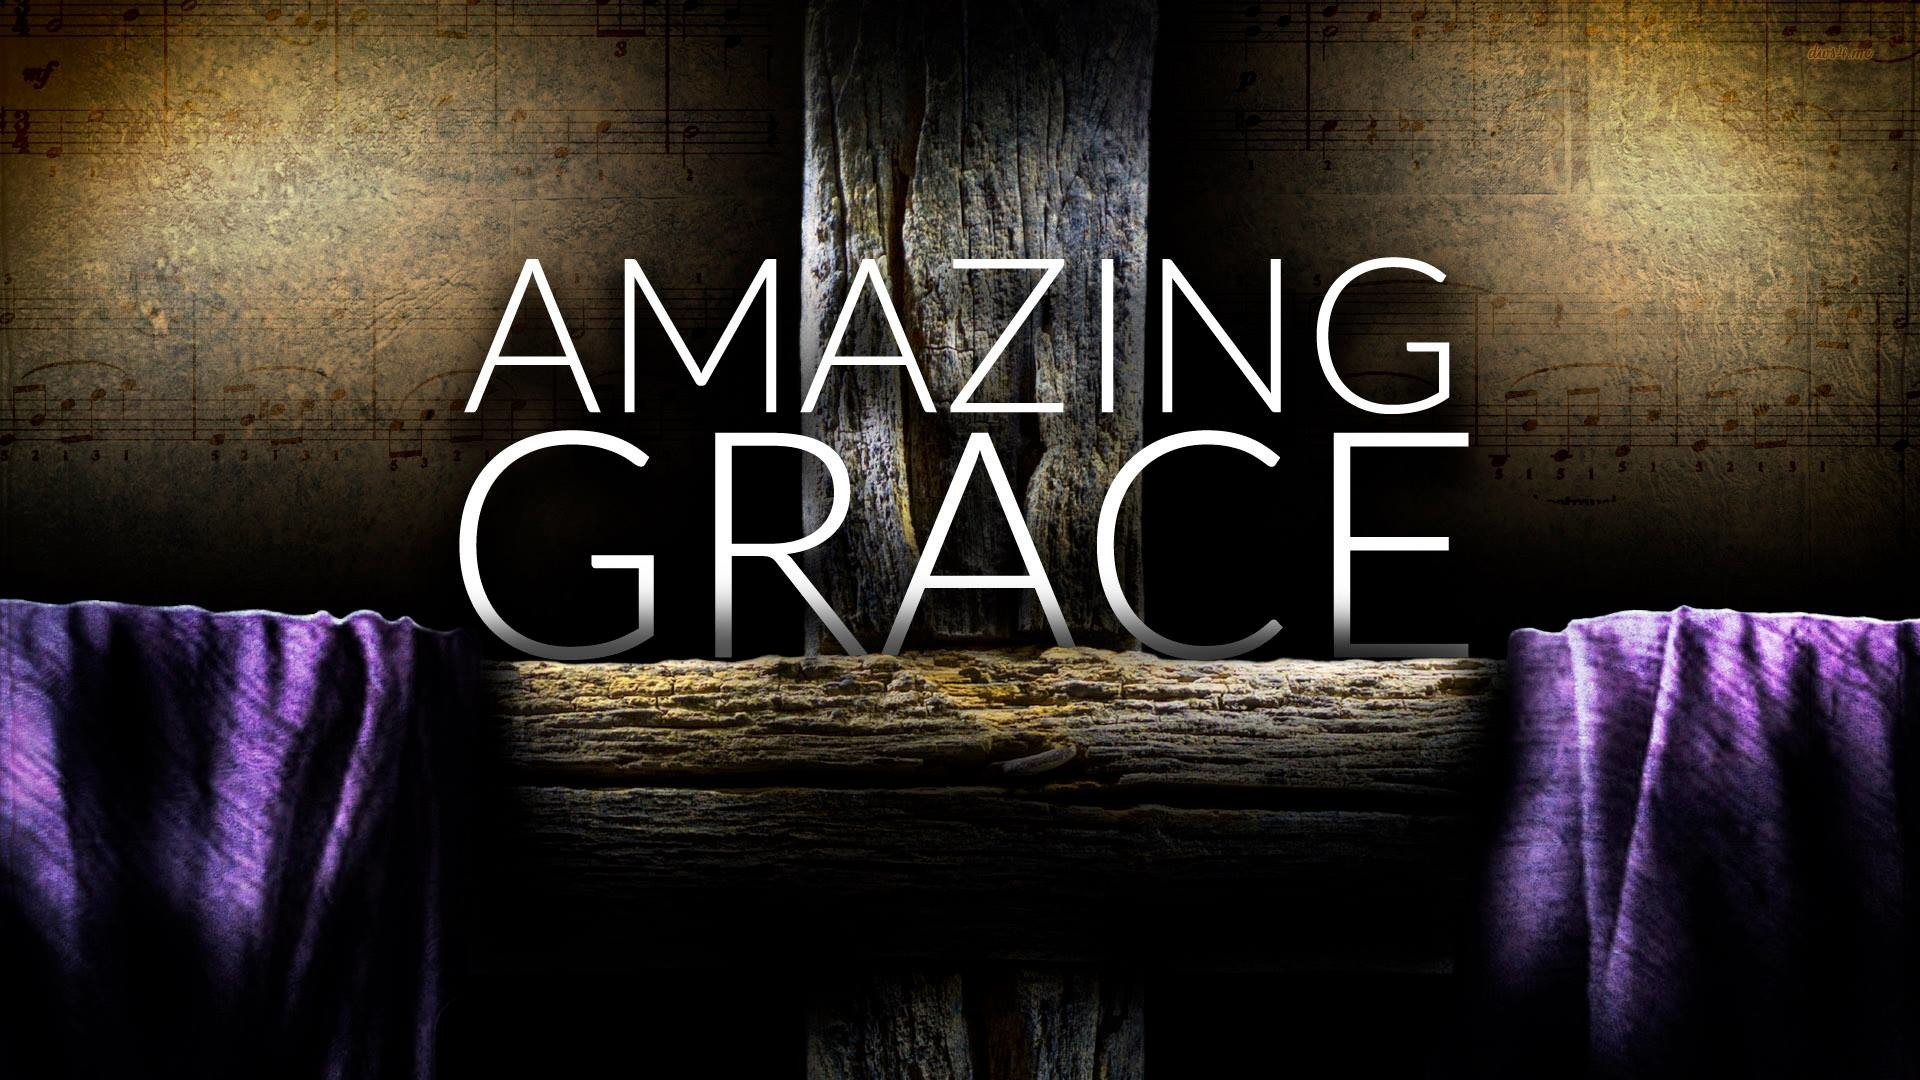 [49+] Amazing Grace Wallpaper on WallpaperSafari |Amazing Grace Wallpaper Poems